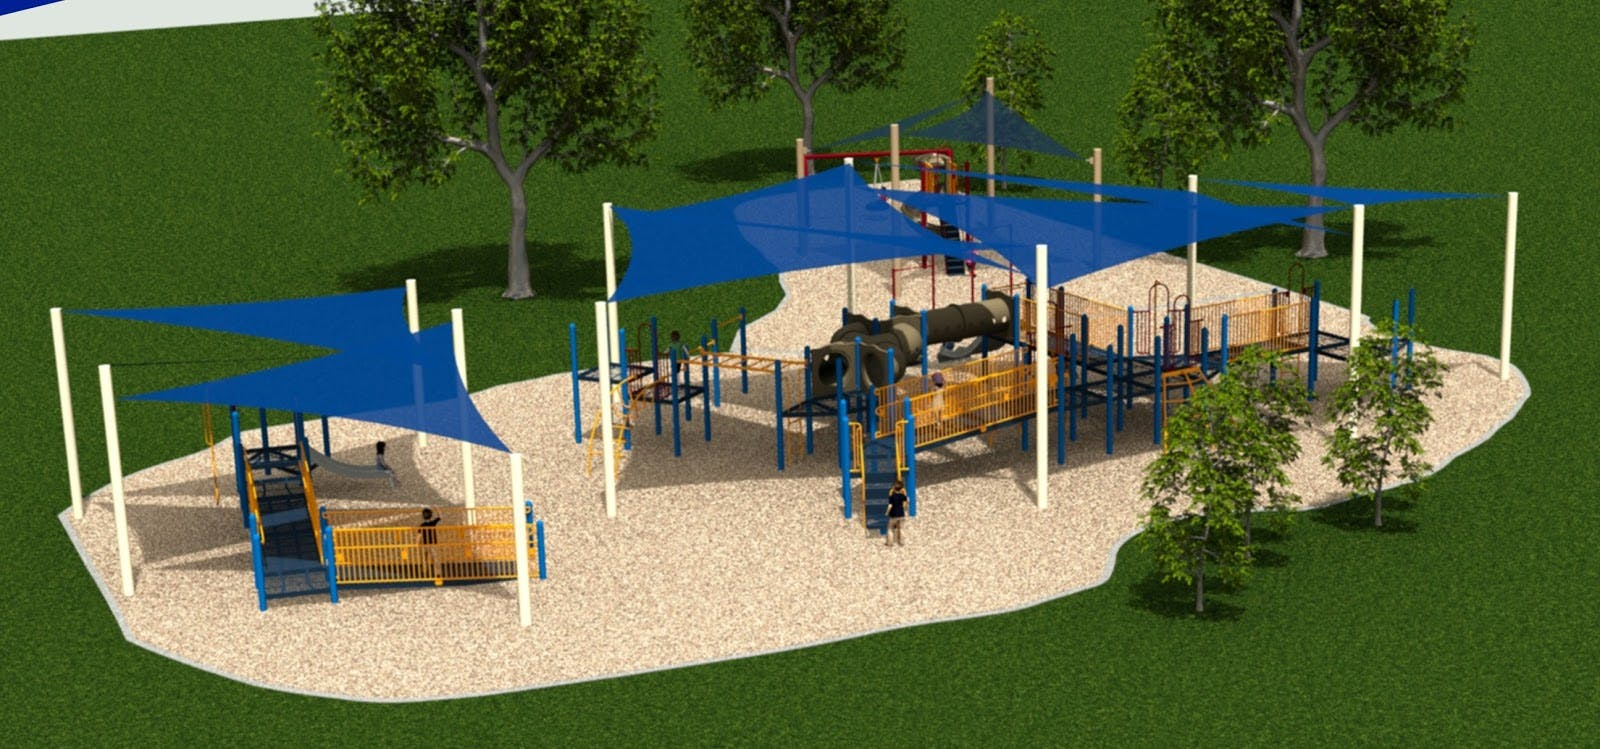 Blue Sail Shade covering playground equipment